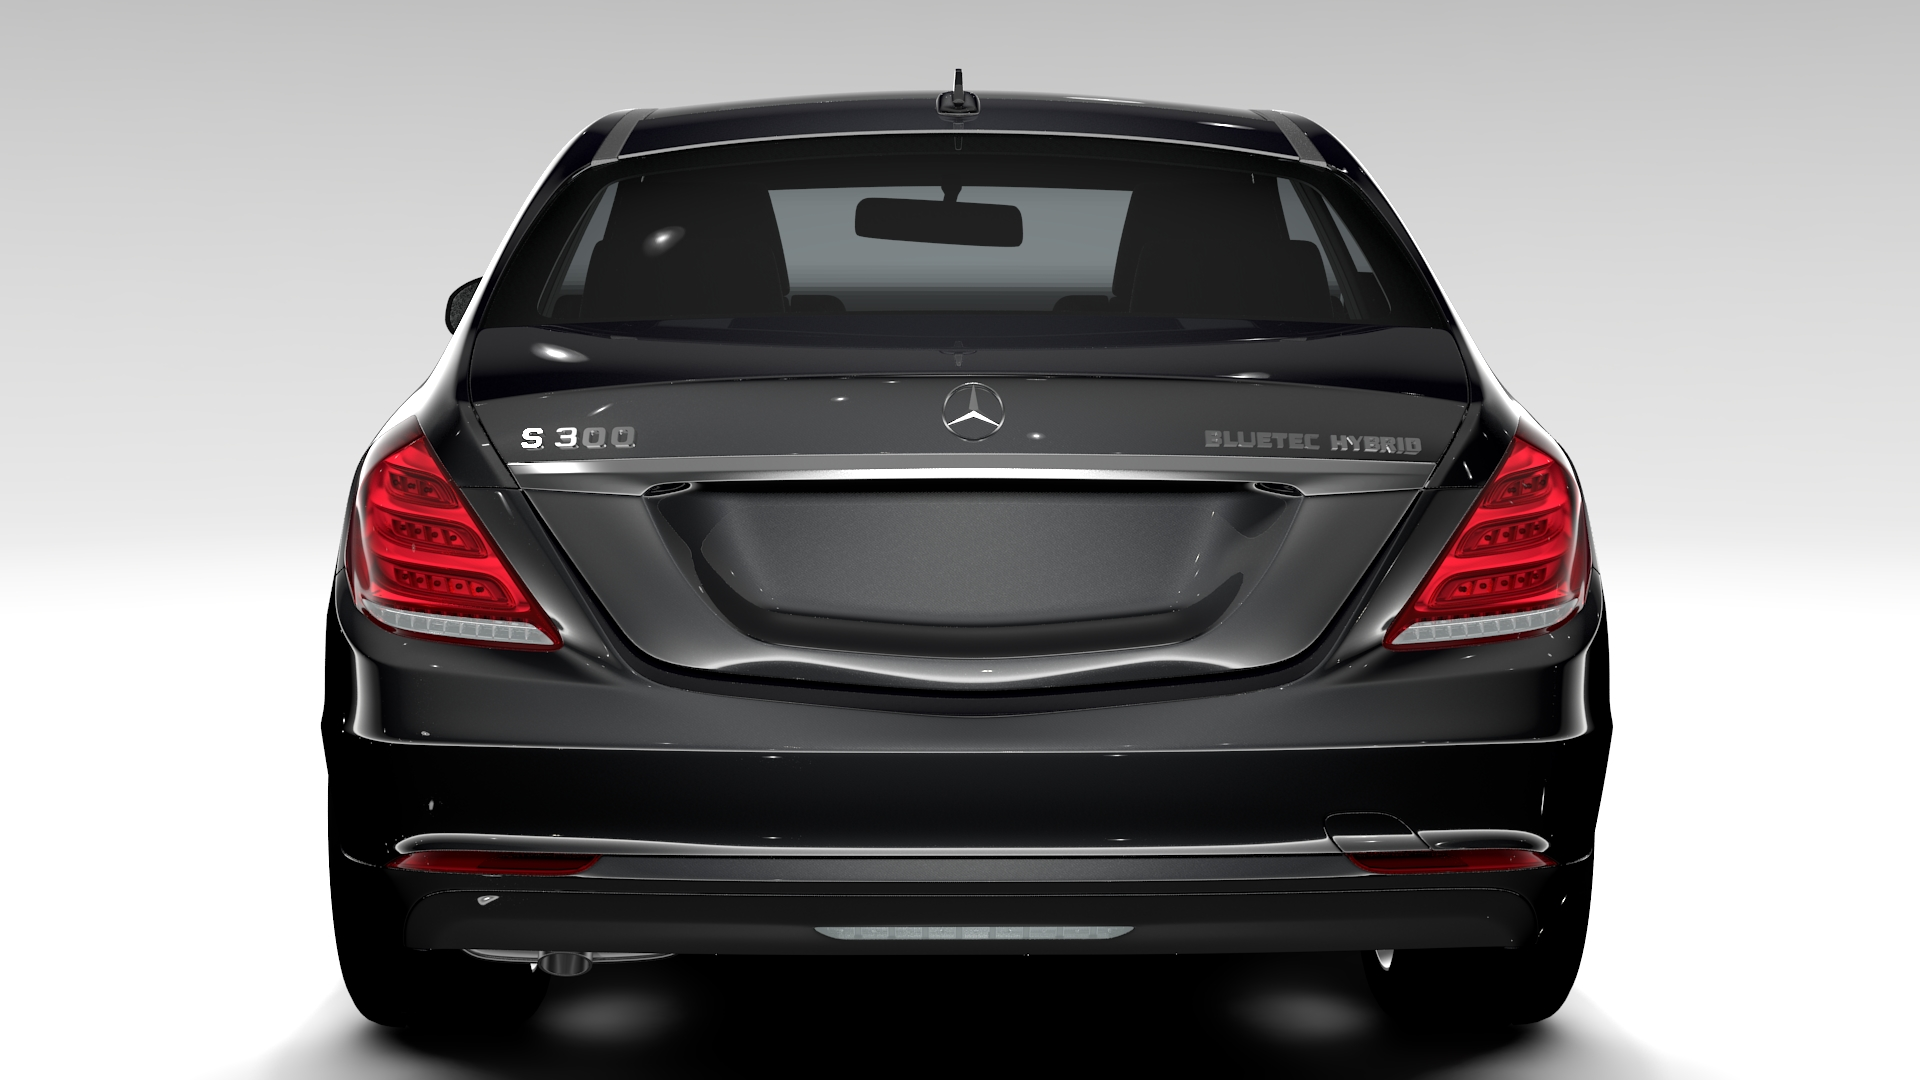 cls the rive benz mercedes hybrid and en sud sport